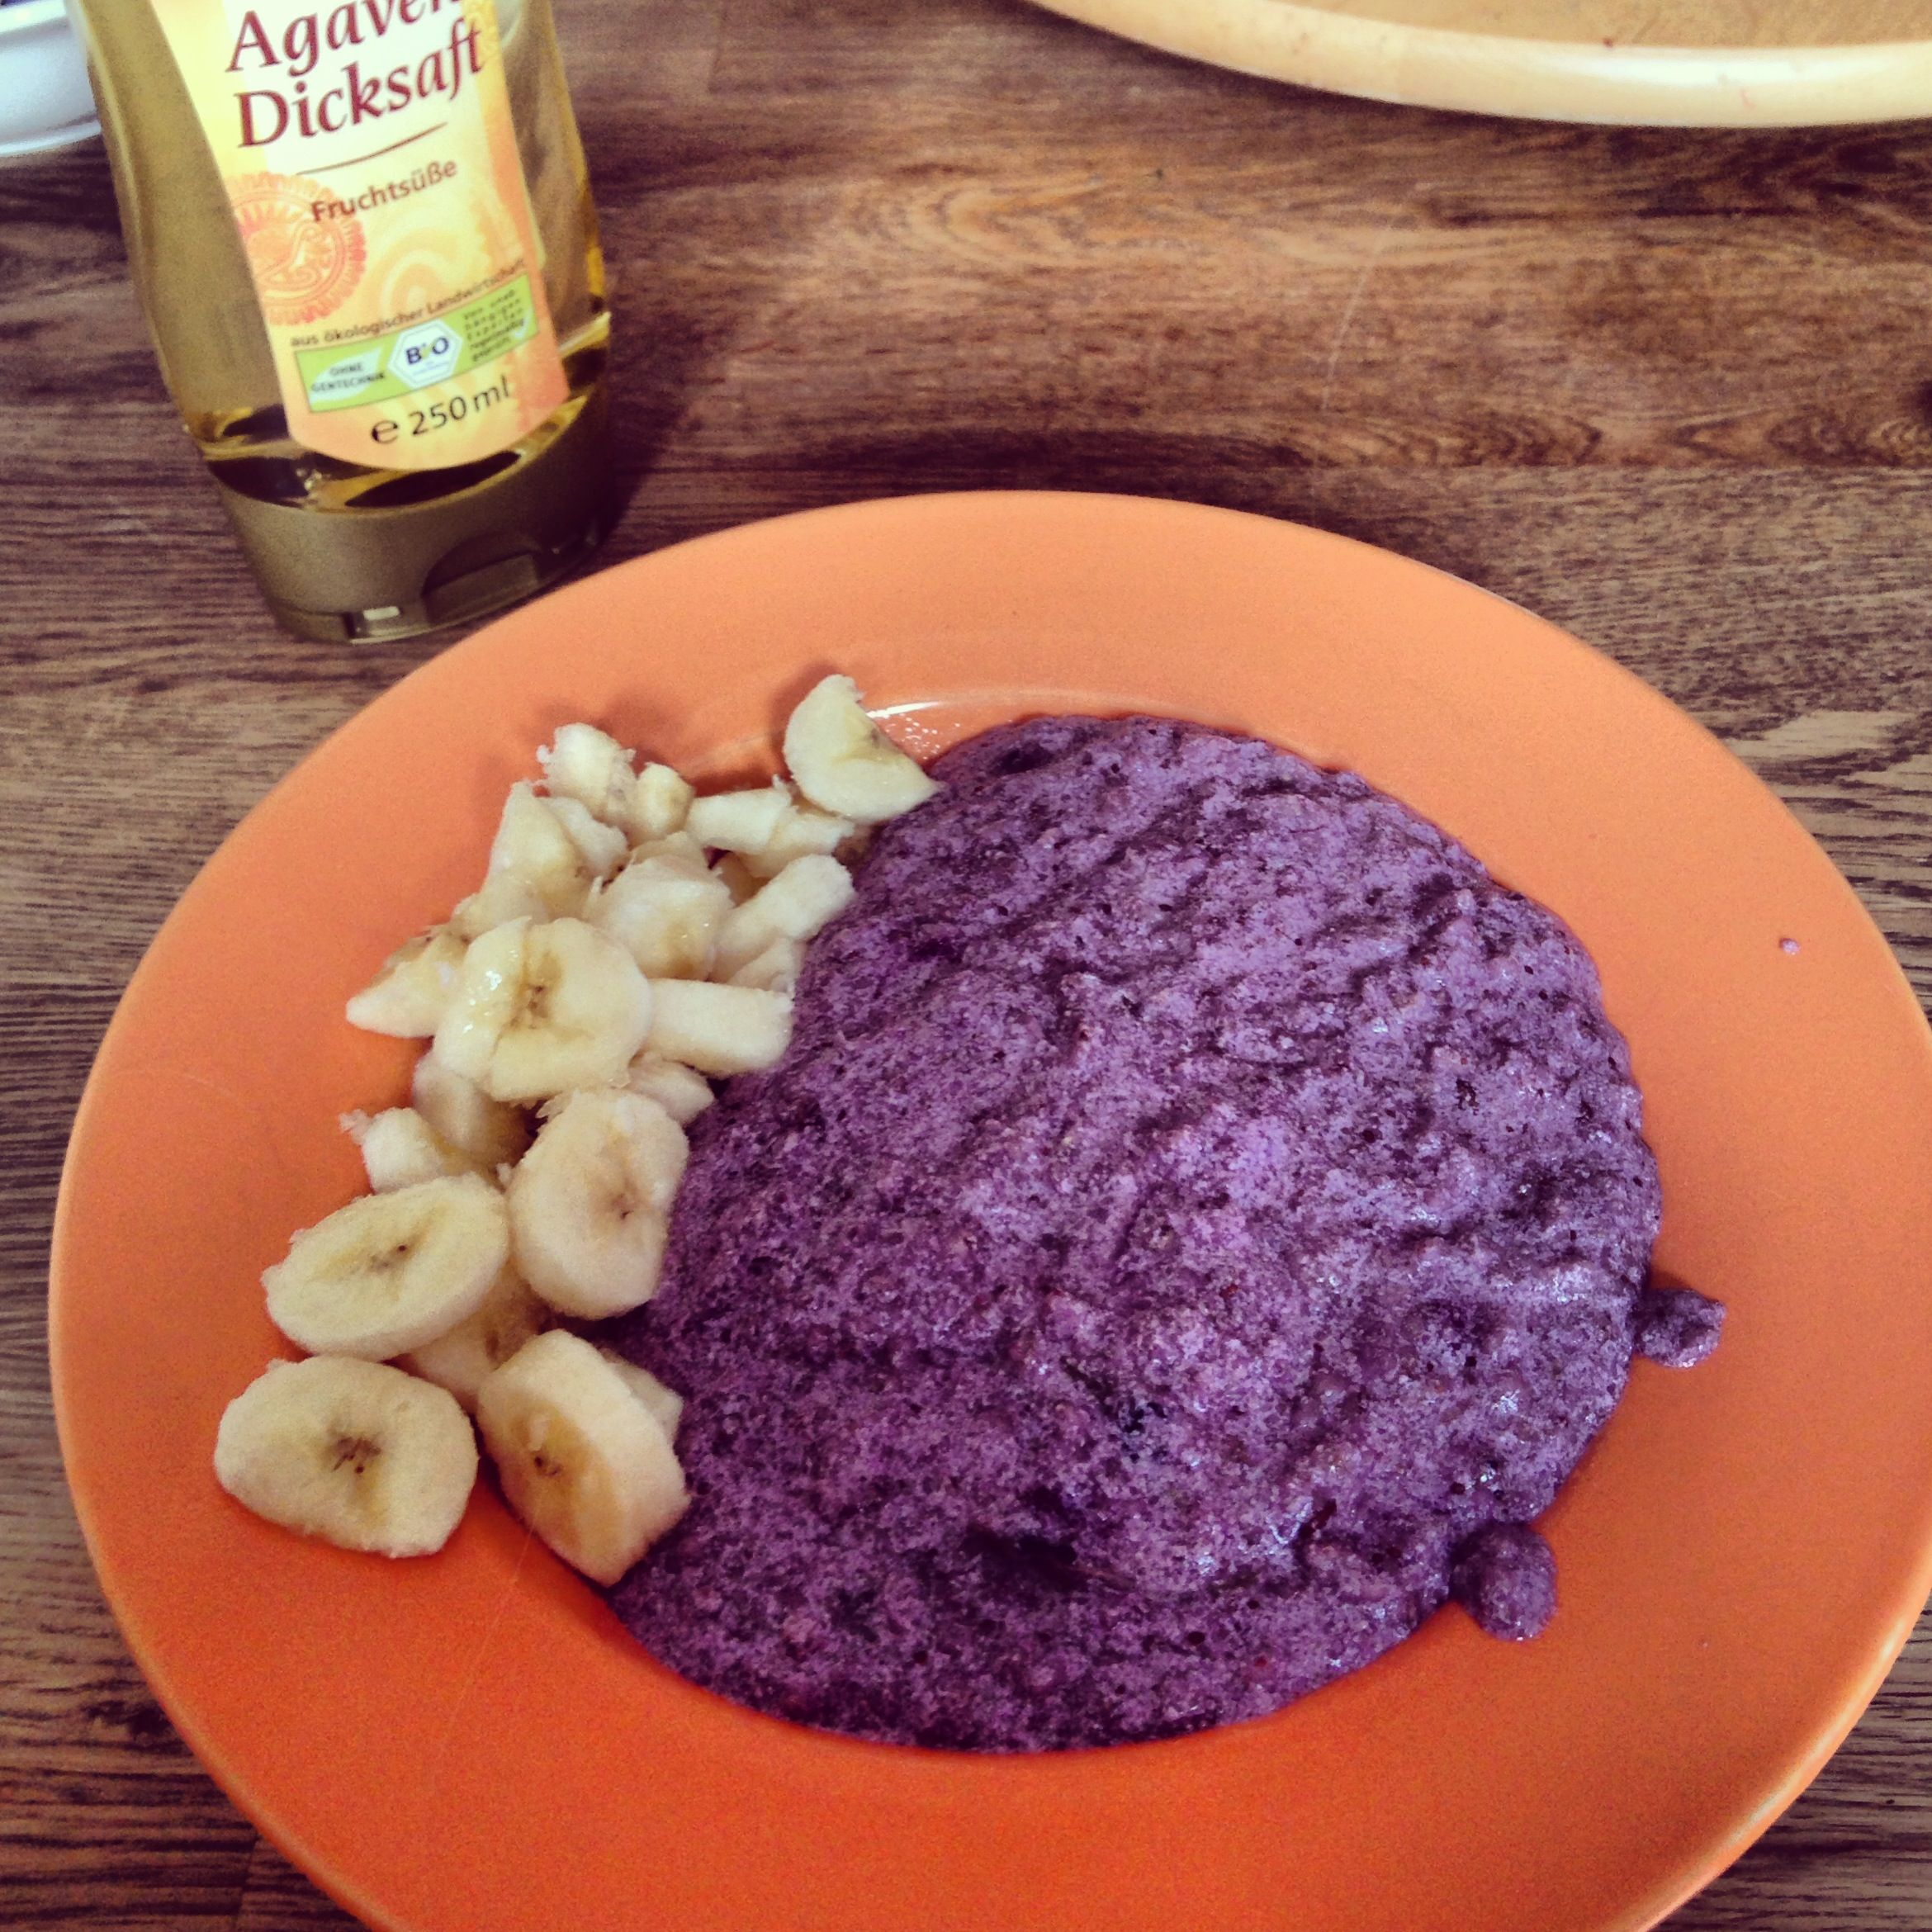 Agave Frucht Purple Oatmeal With Banana And Agave Nectar Oatmeallover 3